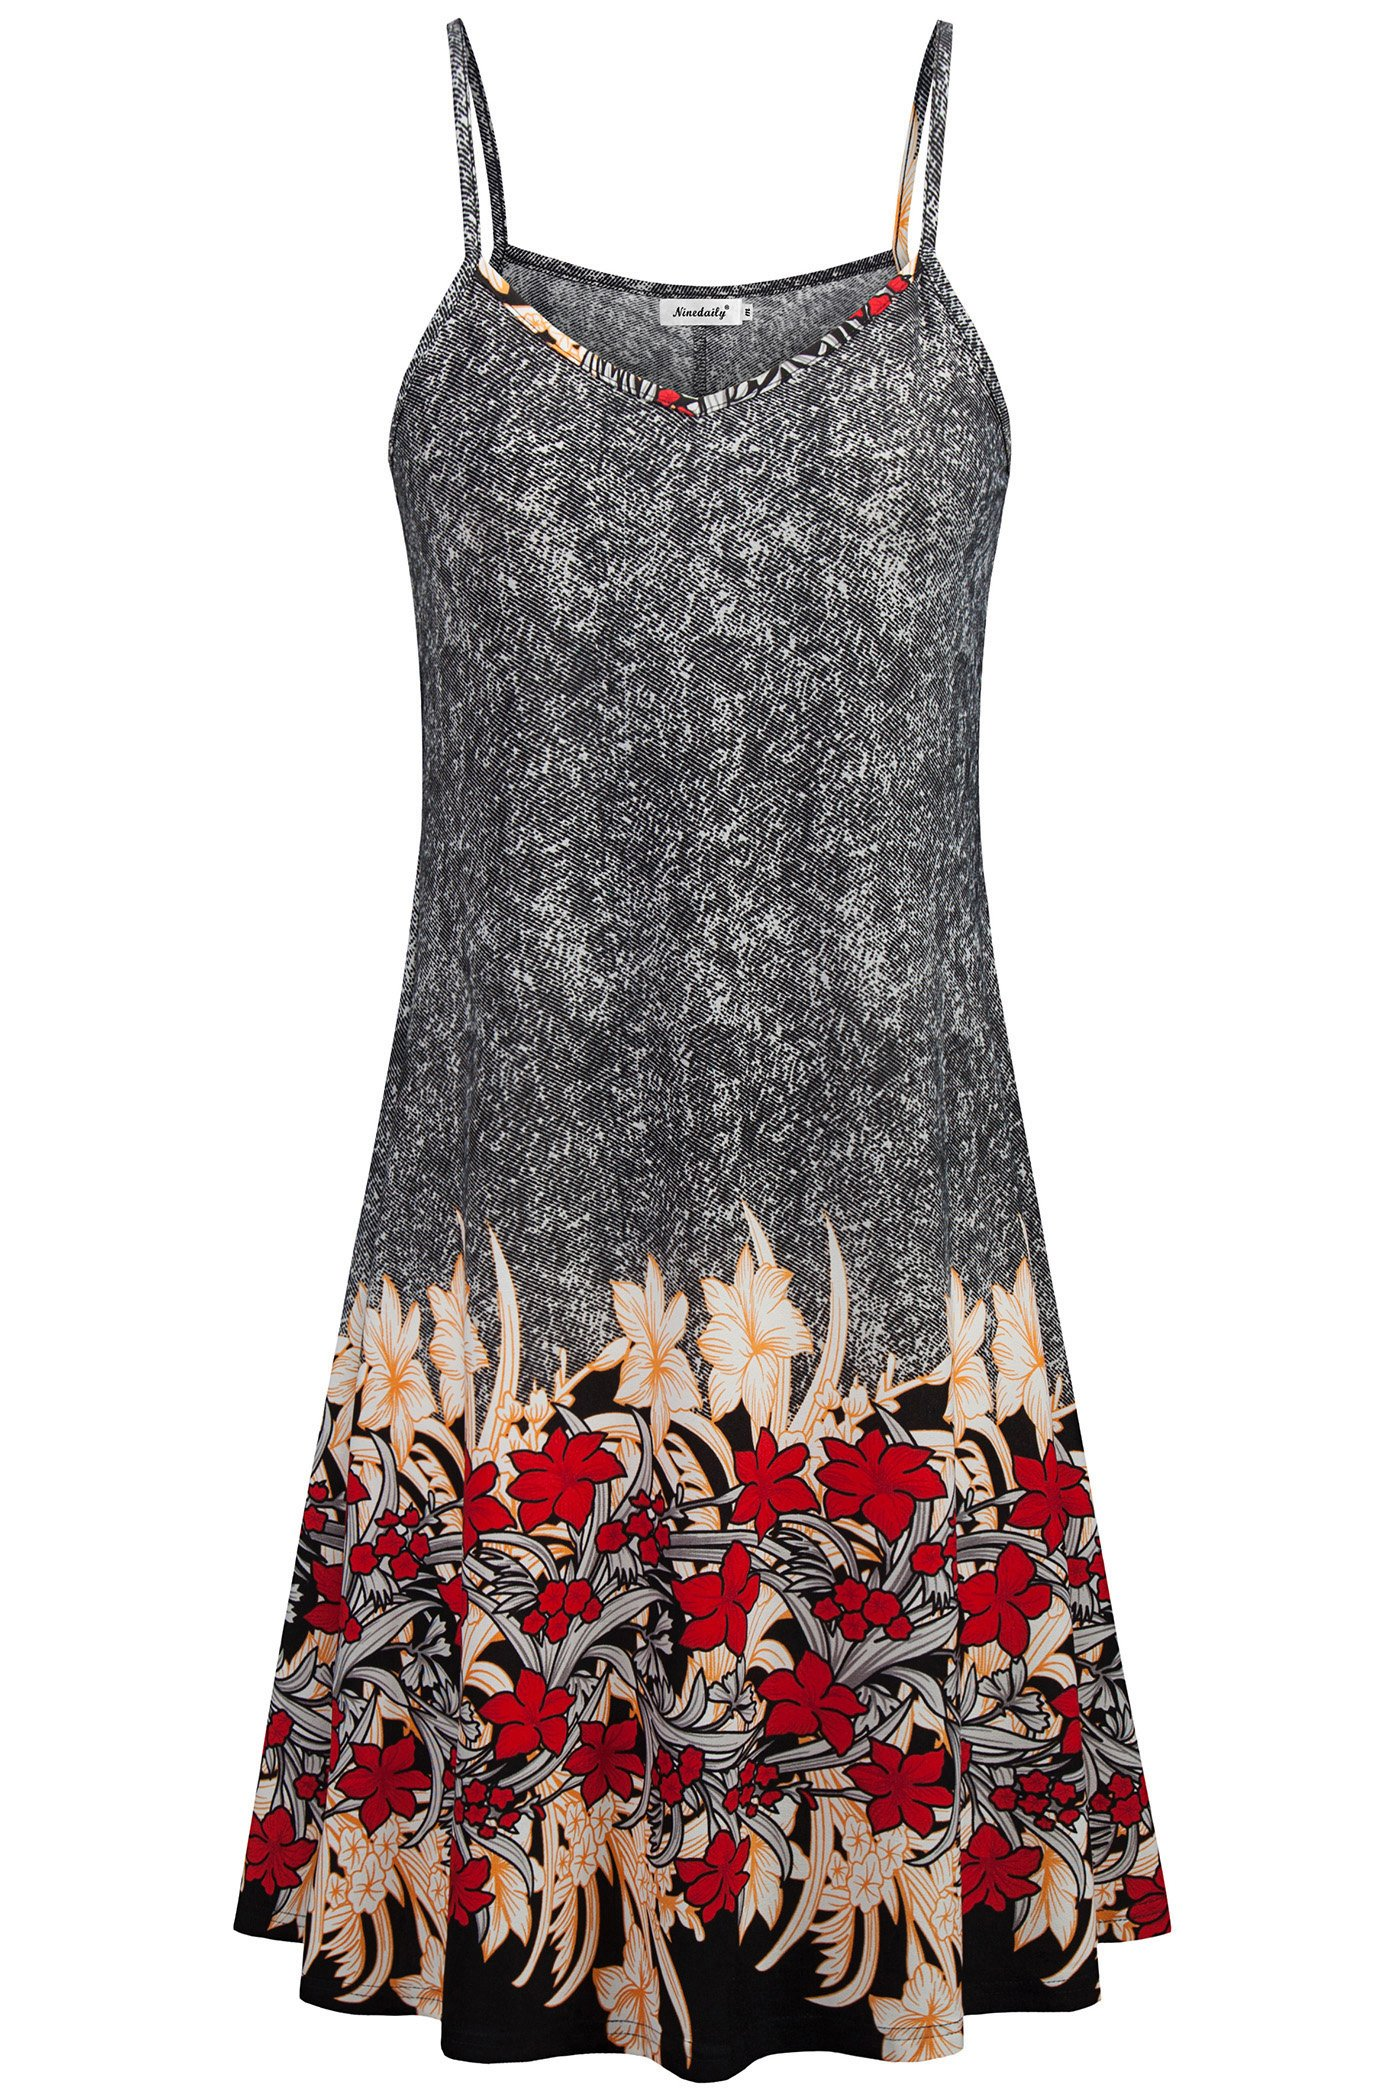 Ninedaily Summer Floral Printed Dresses, Elegant Spaghetti Straps A Line Casual Beach Party Classic Vintage Pattern Flowy Swing Dresses Grey Red XL(US16-18)